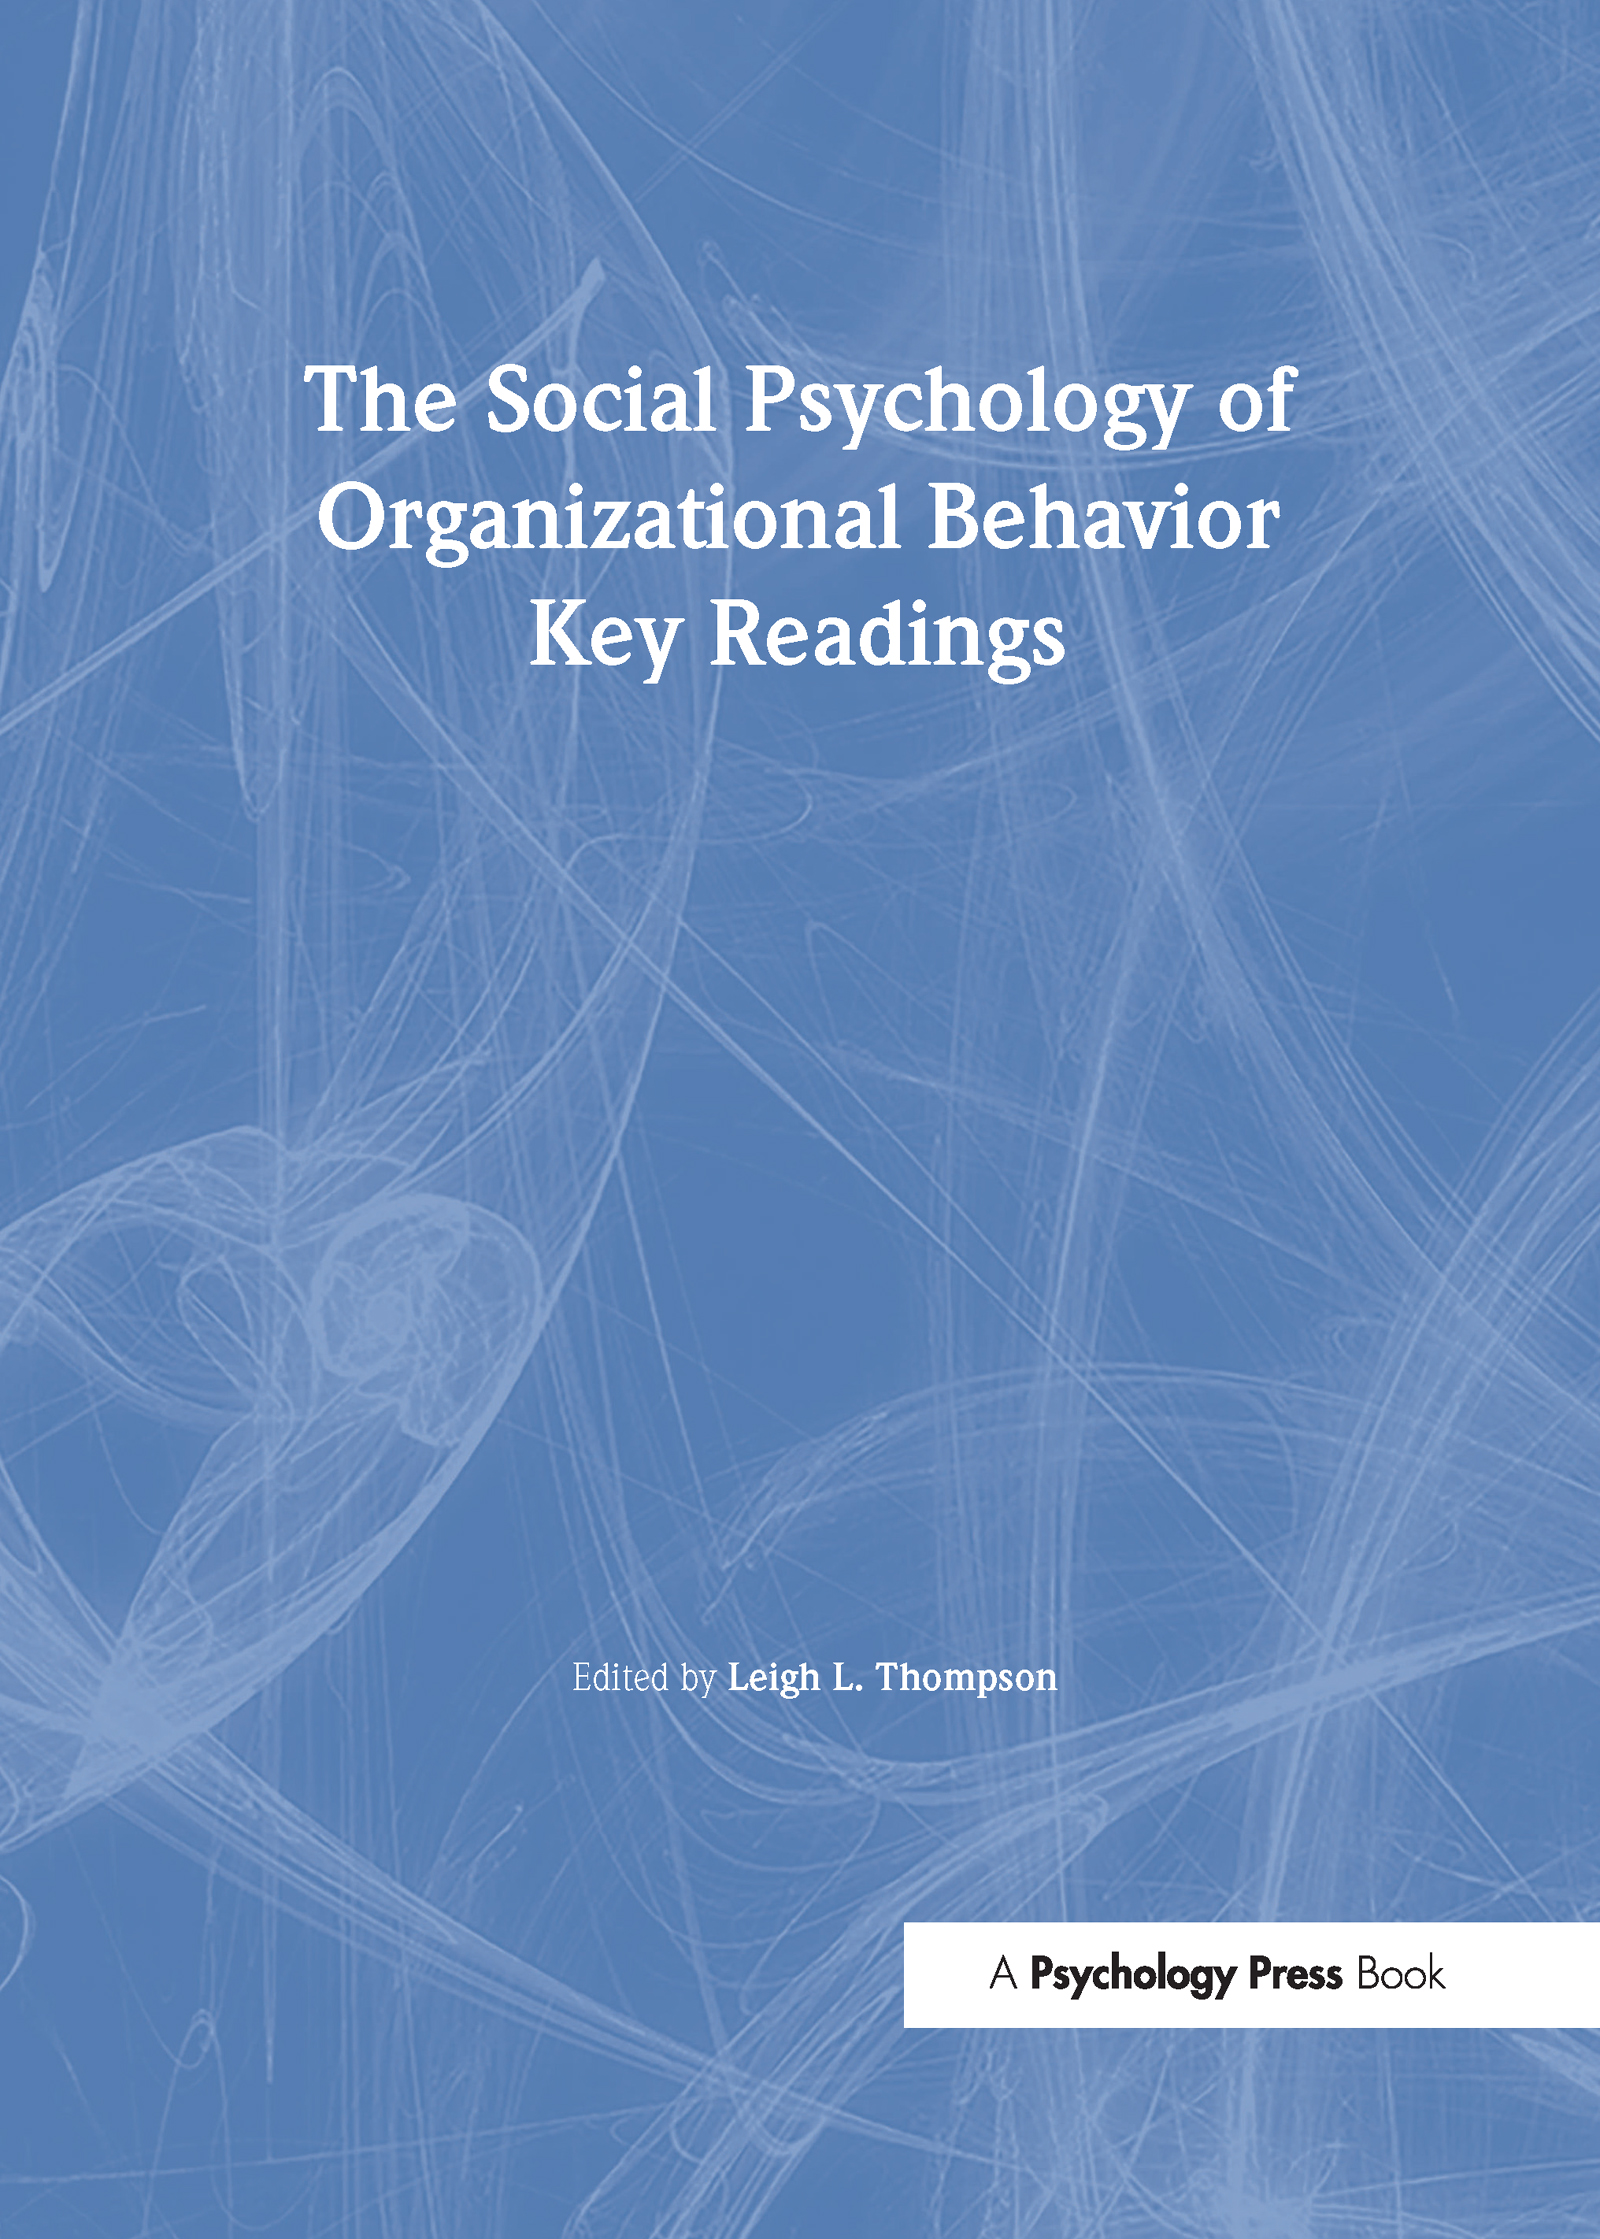 The Social Psychology of Organizational Behavior: Key Readings book cover